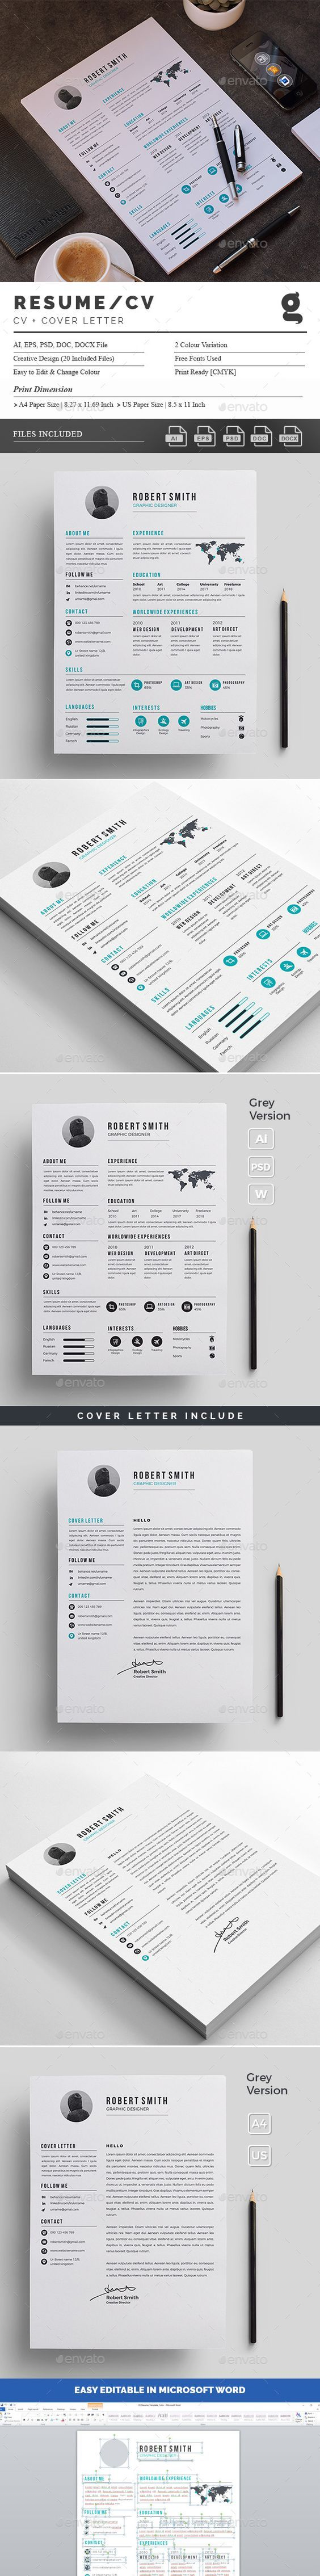 landscape architecture cover letter%0A   resume design concepts which get you hired